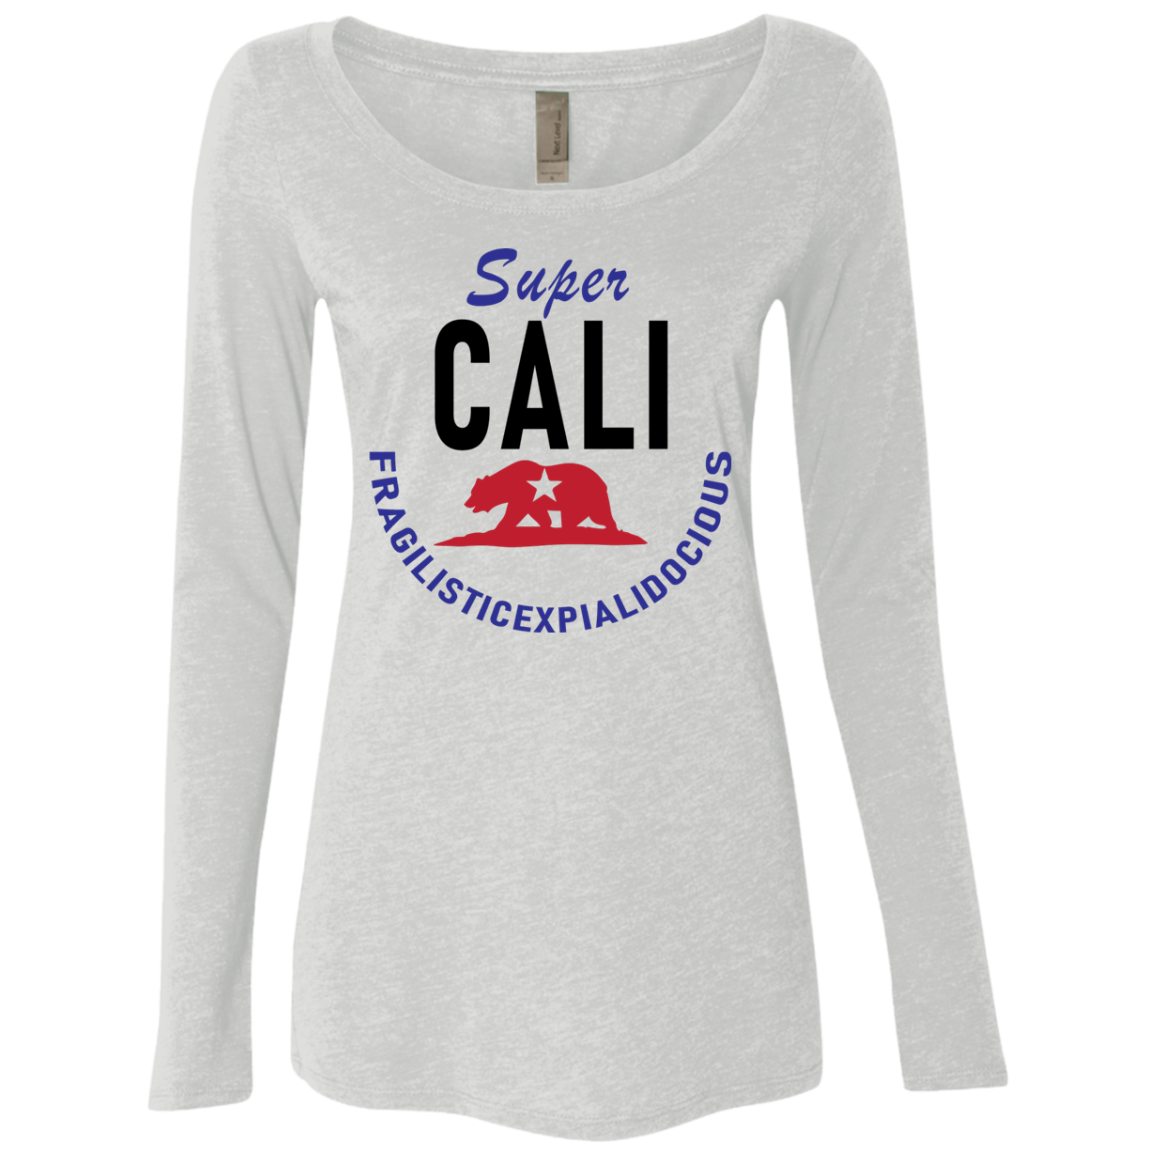 Super Cali Fragilisticexpialidocious Women's Long Sleeve Tee